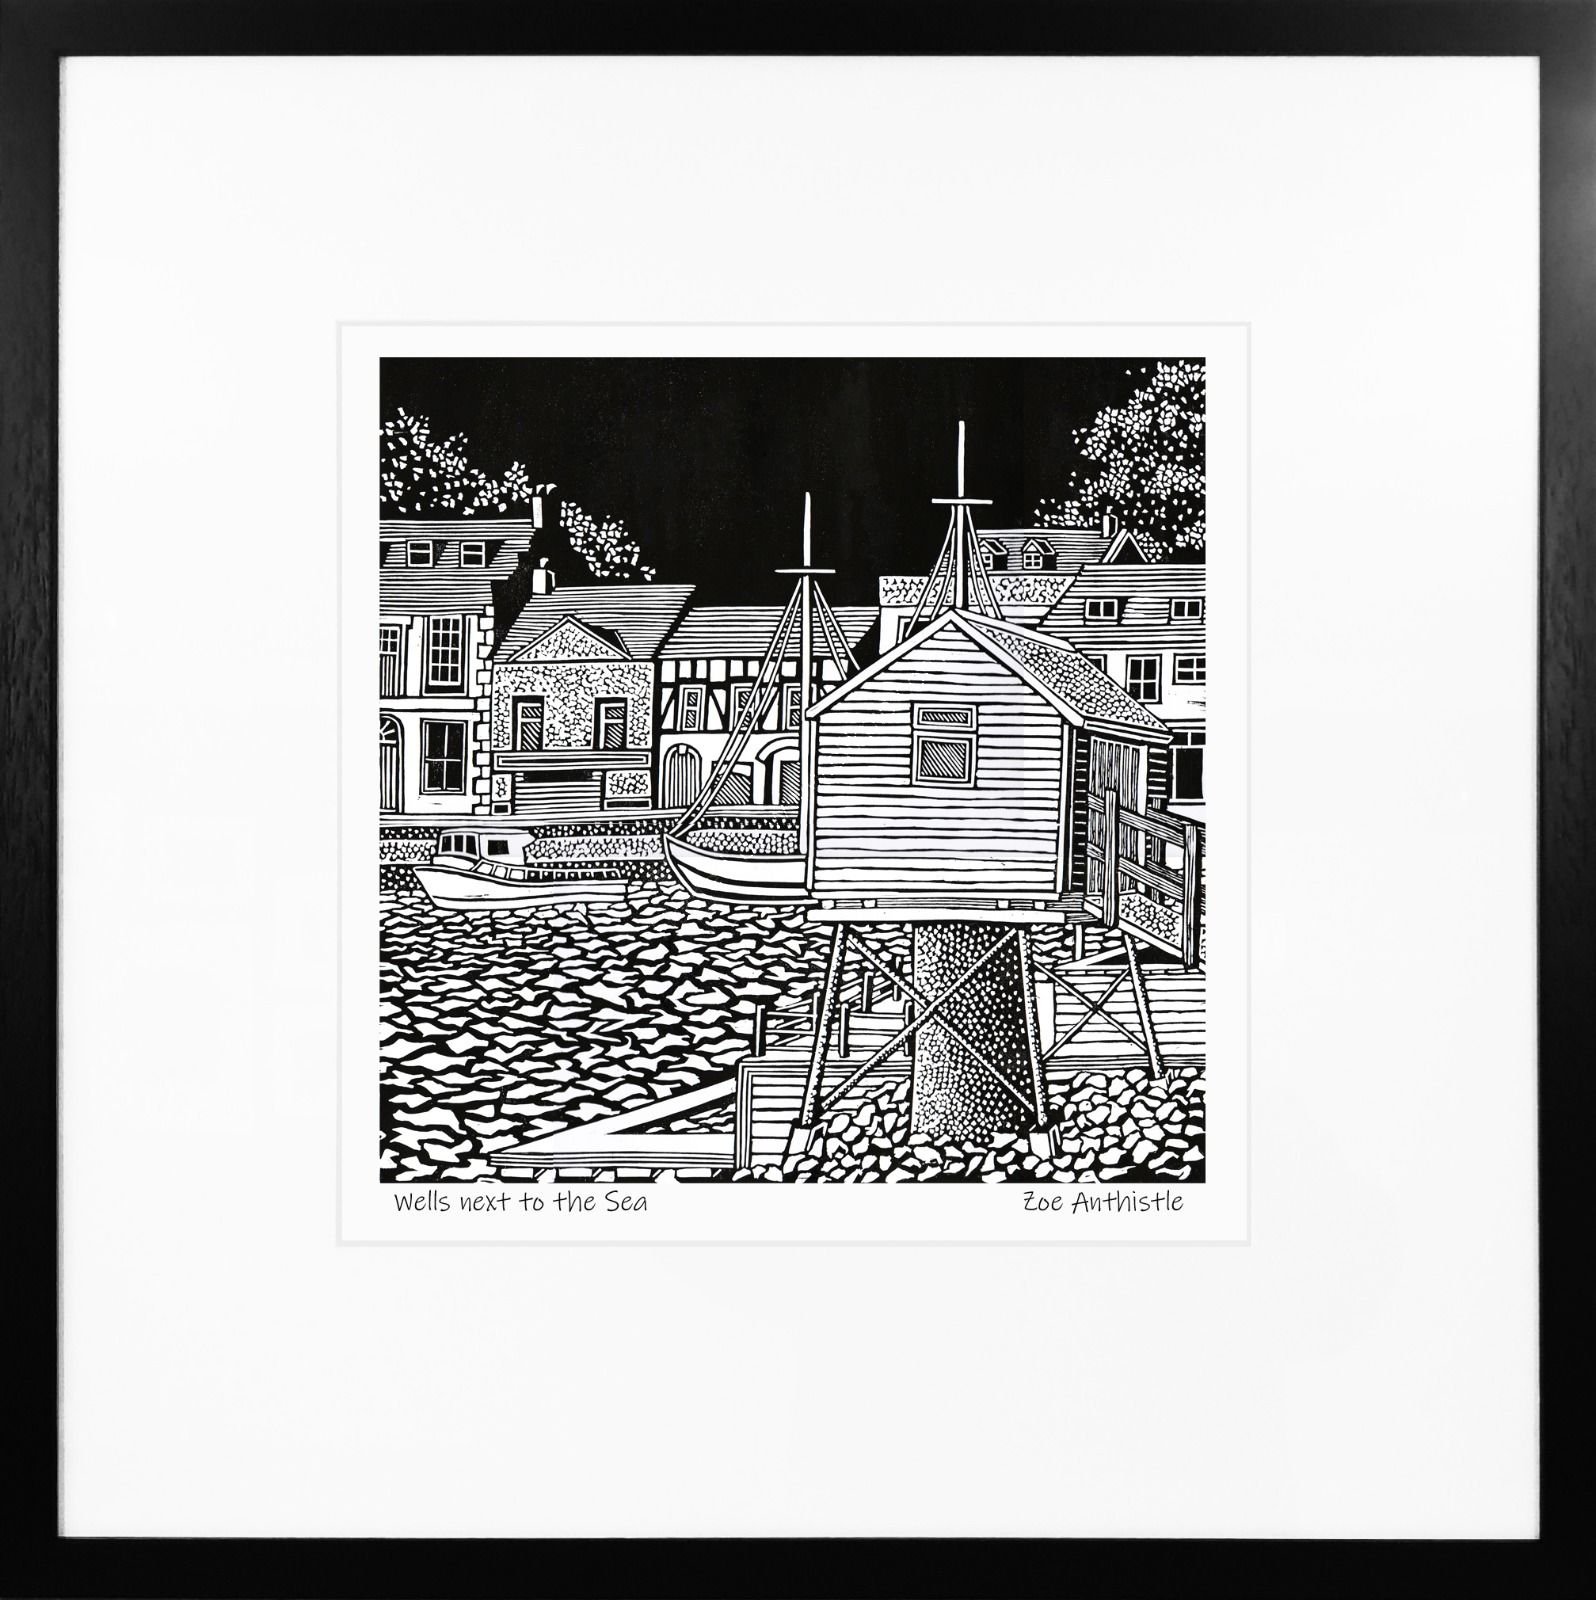 'Wells next to the Sea'